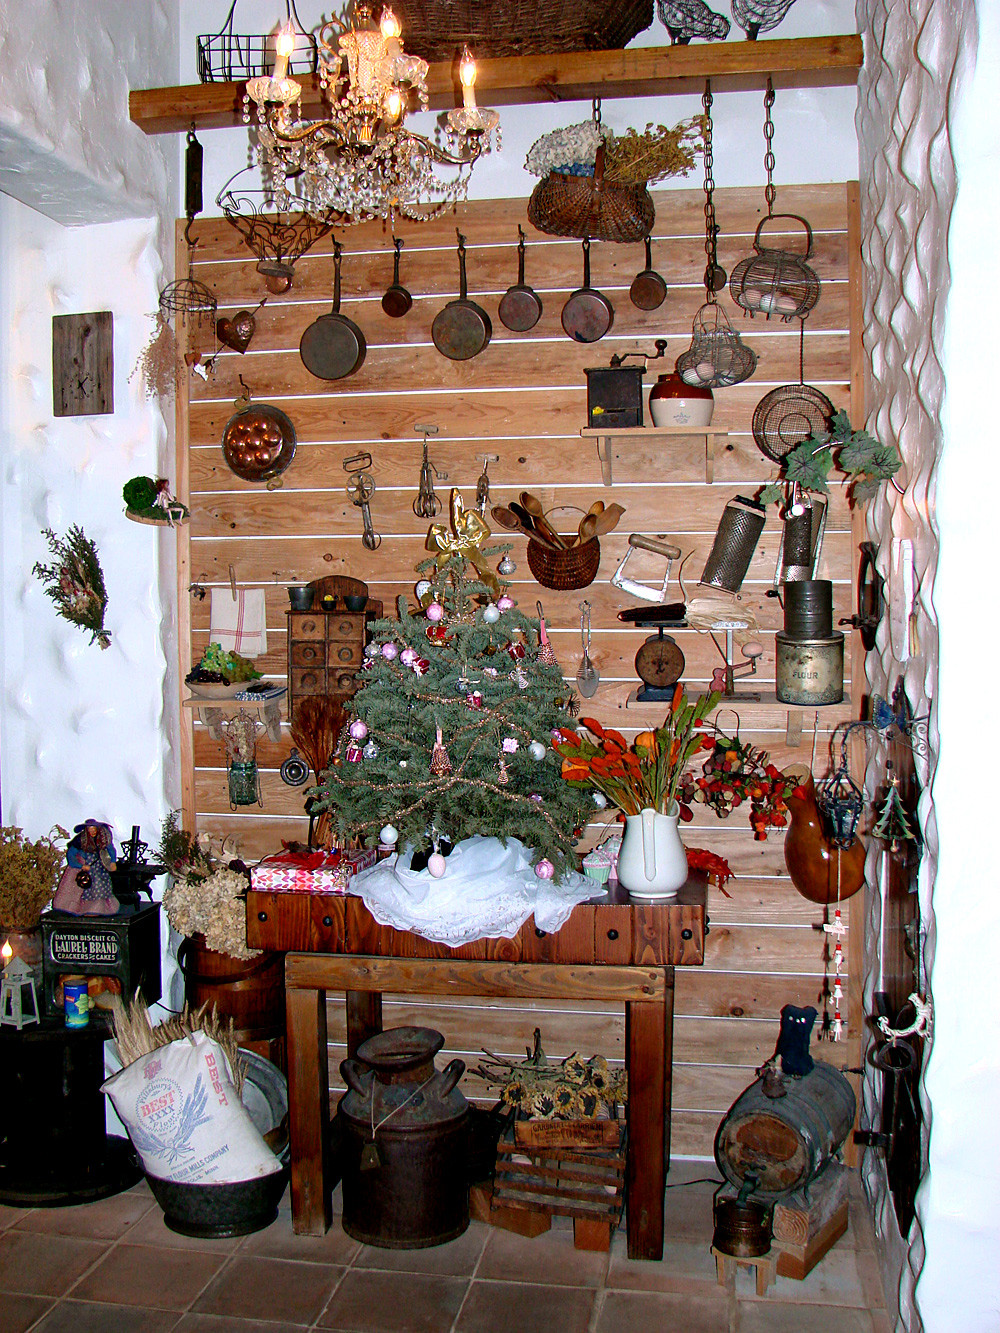 Best ideas about Themed Kitchen Decorations . Save or Pin Country Themed Kitchen Decor Now.